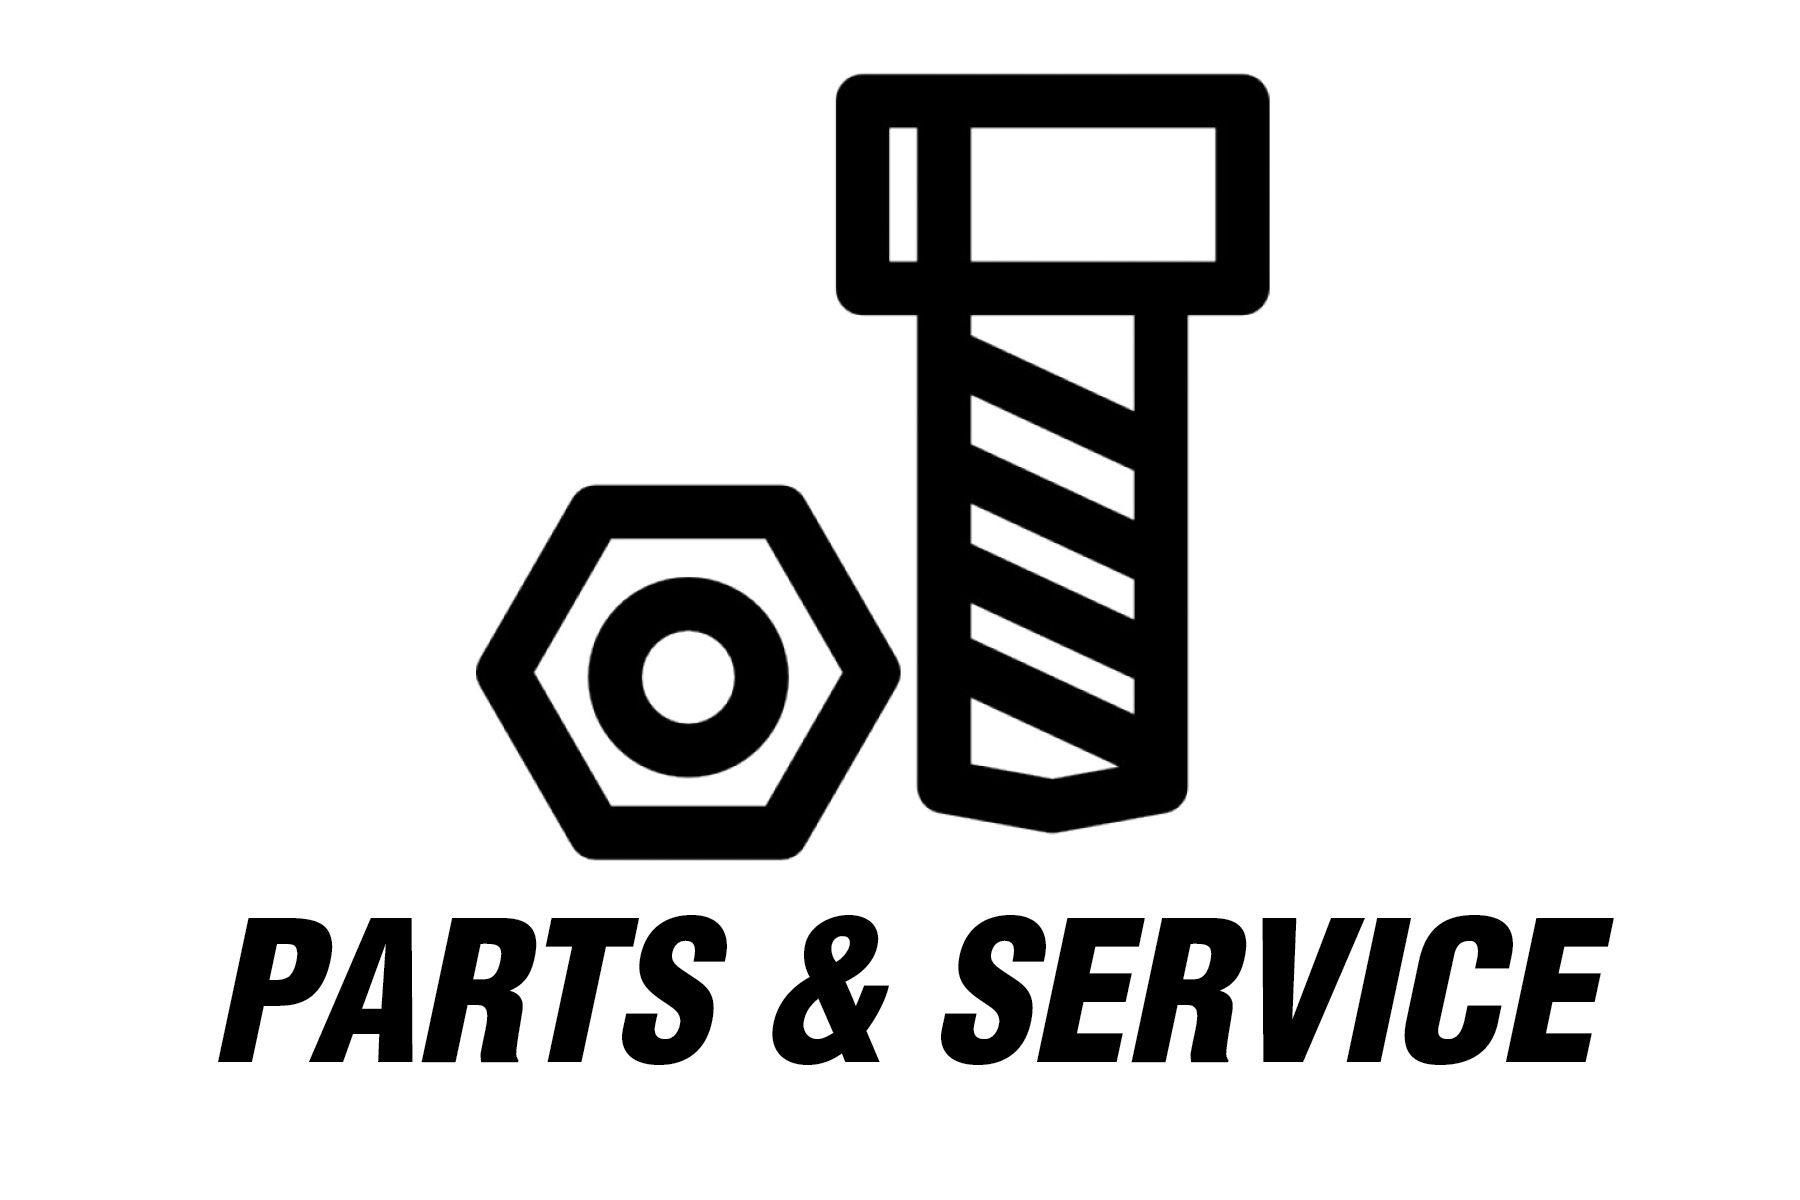 PARTS AND SERVICE.jpg